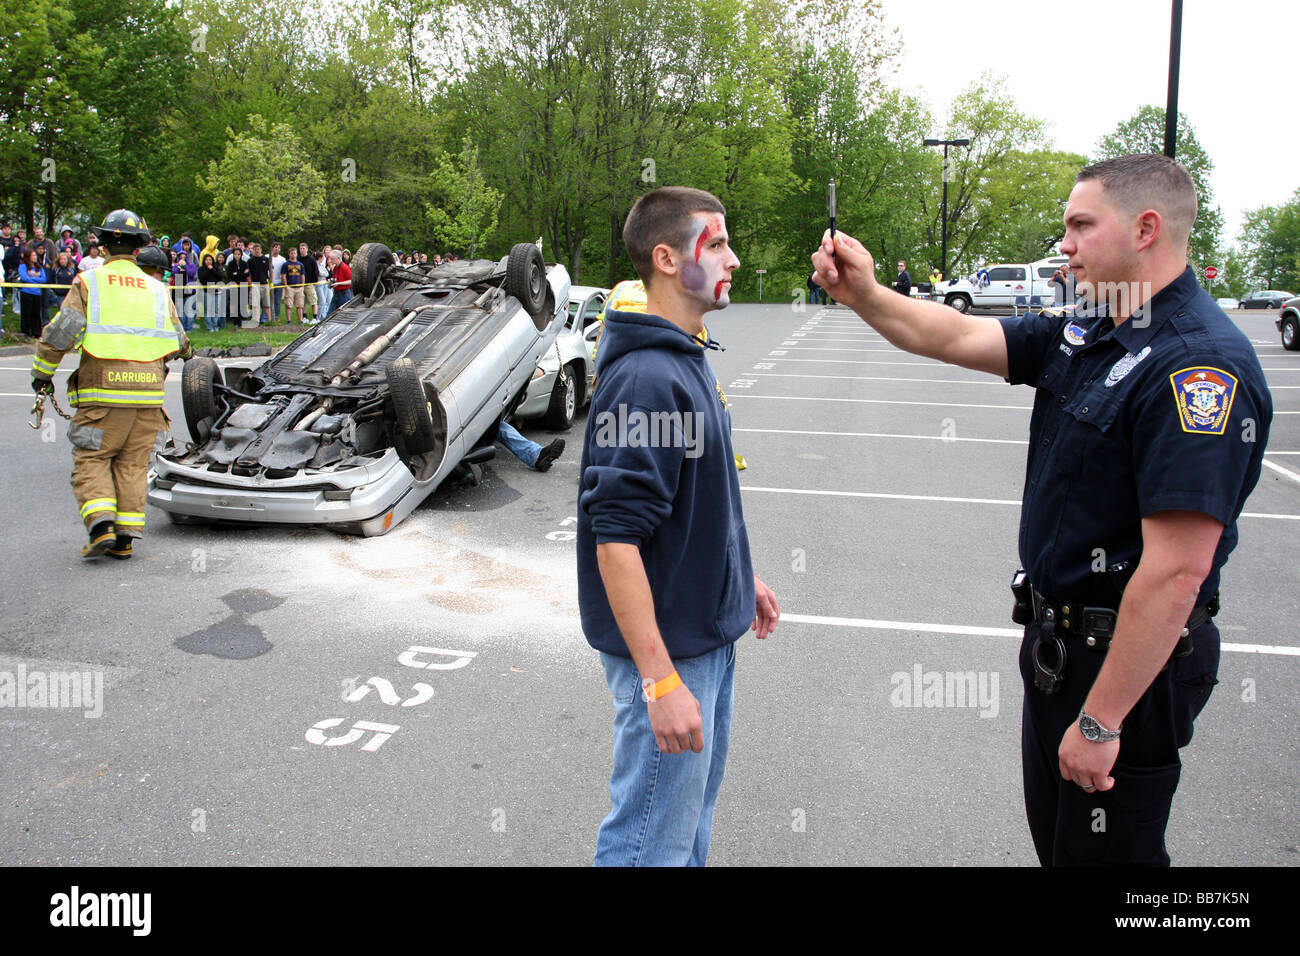 A police officer gives a teenager a DUI test during a mock Drunk driving accident at a USA High School Stock Photo